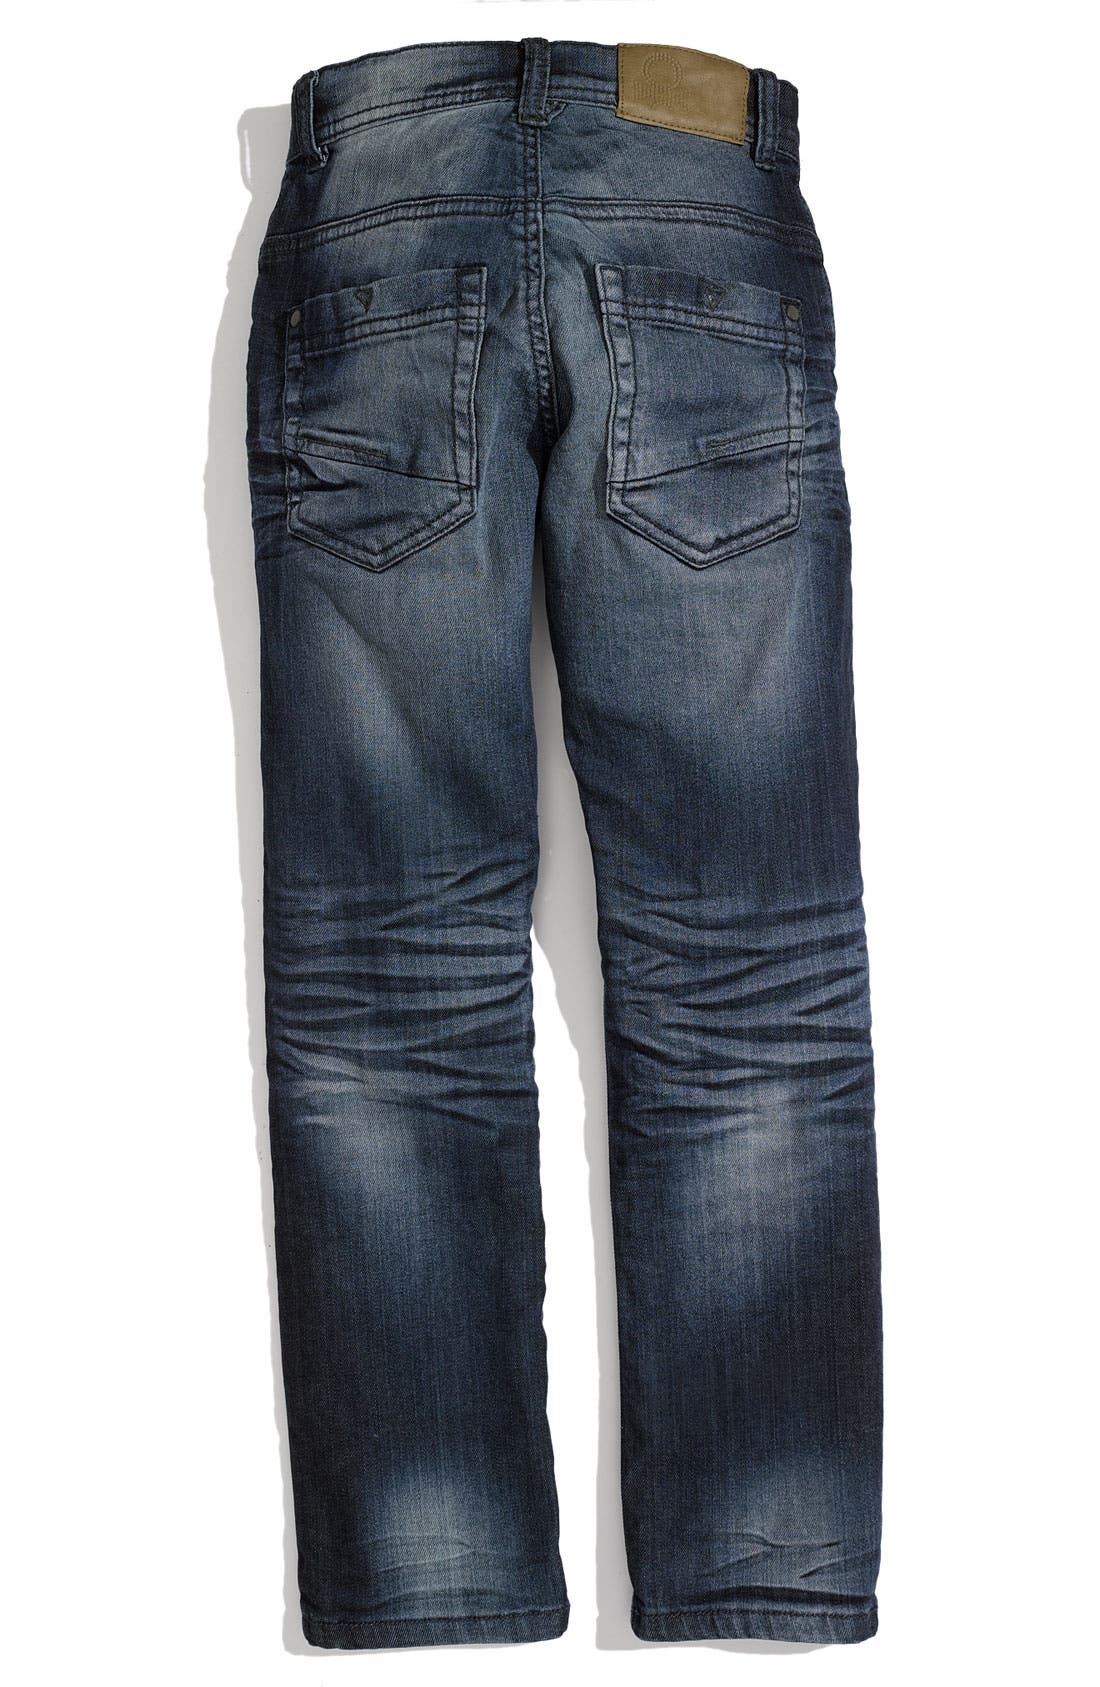 Skinny Stretch Jeans,                             Main thumbnail 1, color,                             420